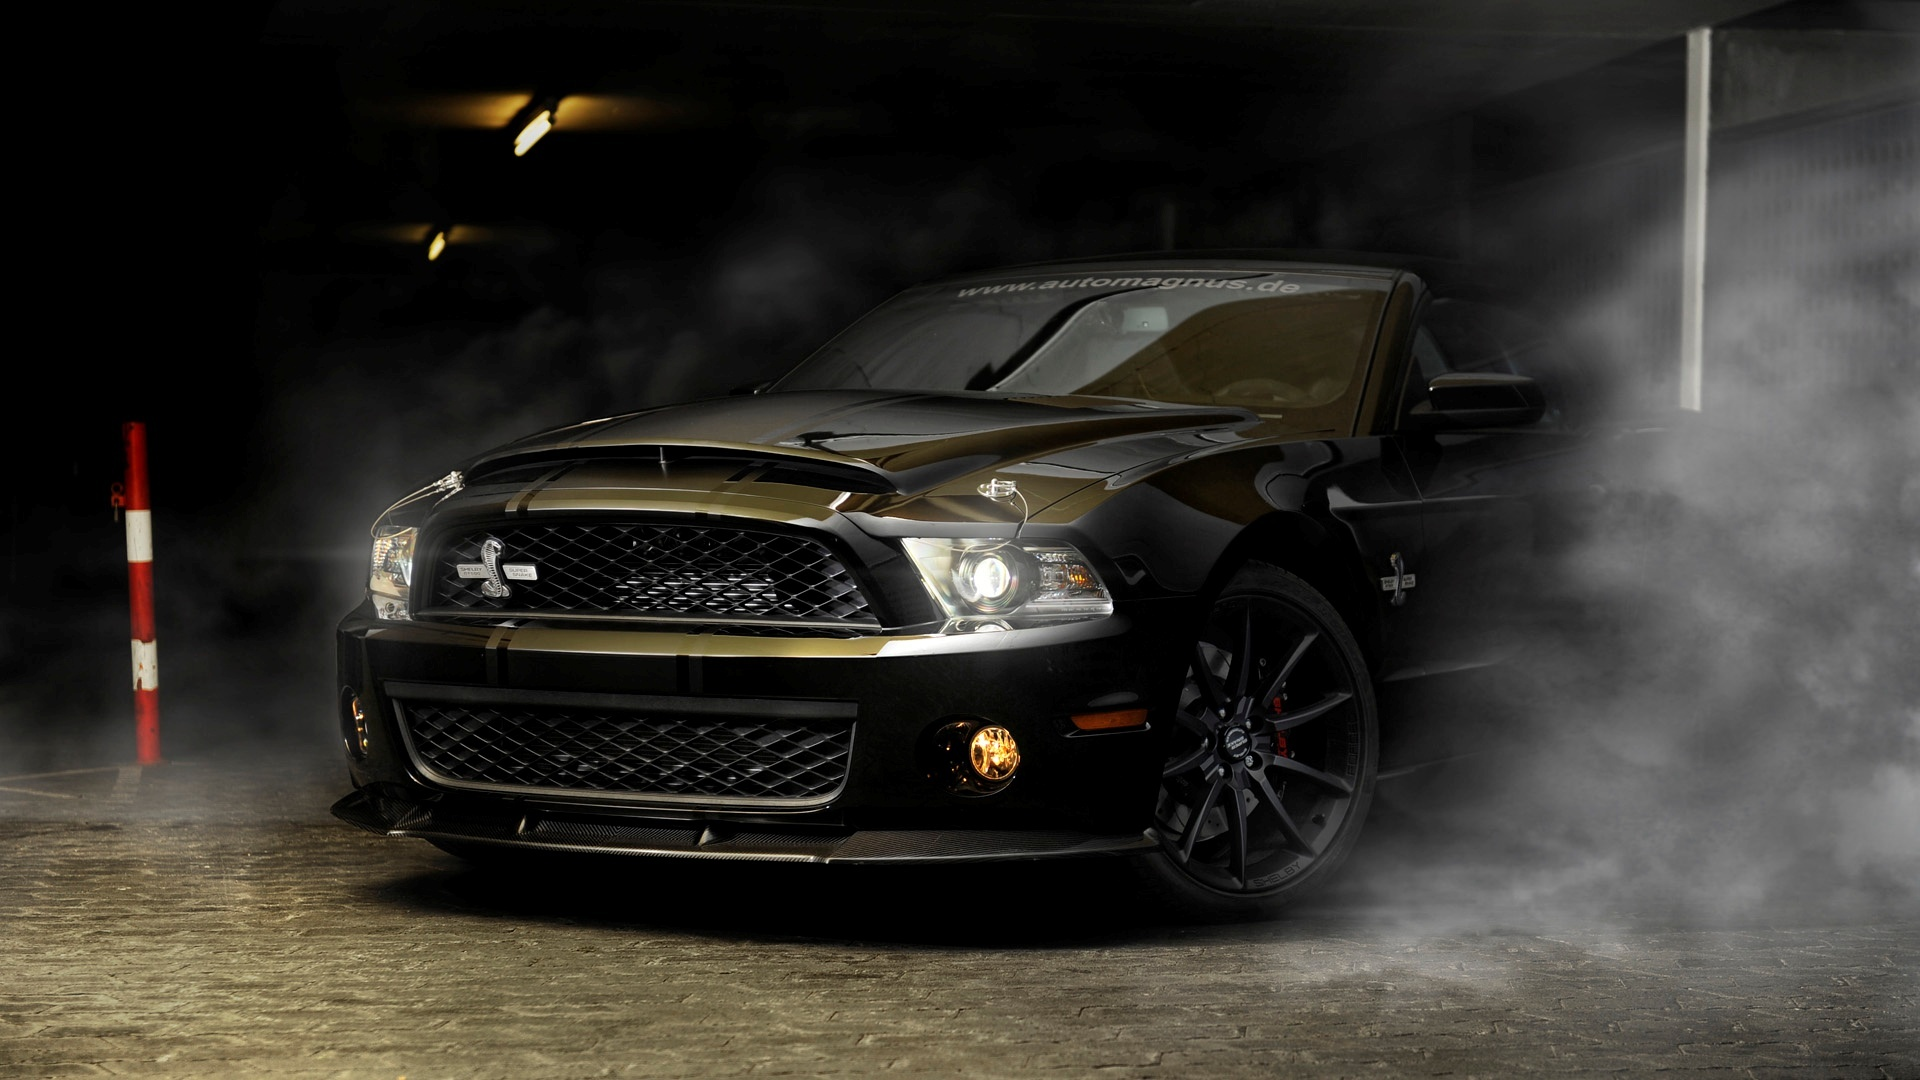 ford mustang 2013 v6 oder 2012 gt mit v8 auto. Black Bedroom Furniture Sets. Home Design Ideas